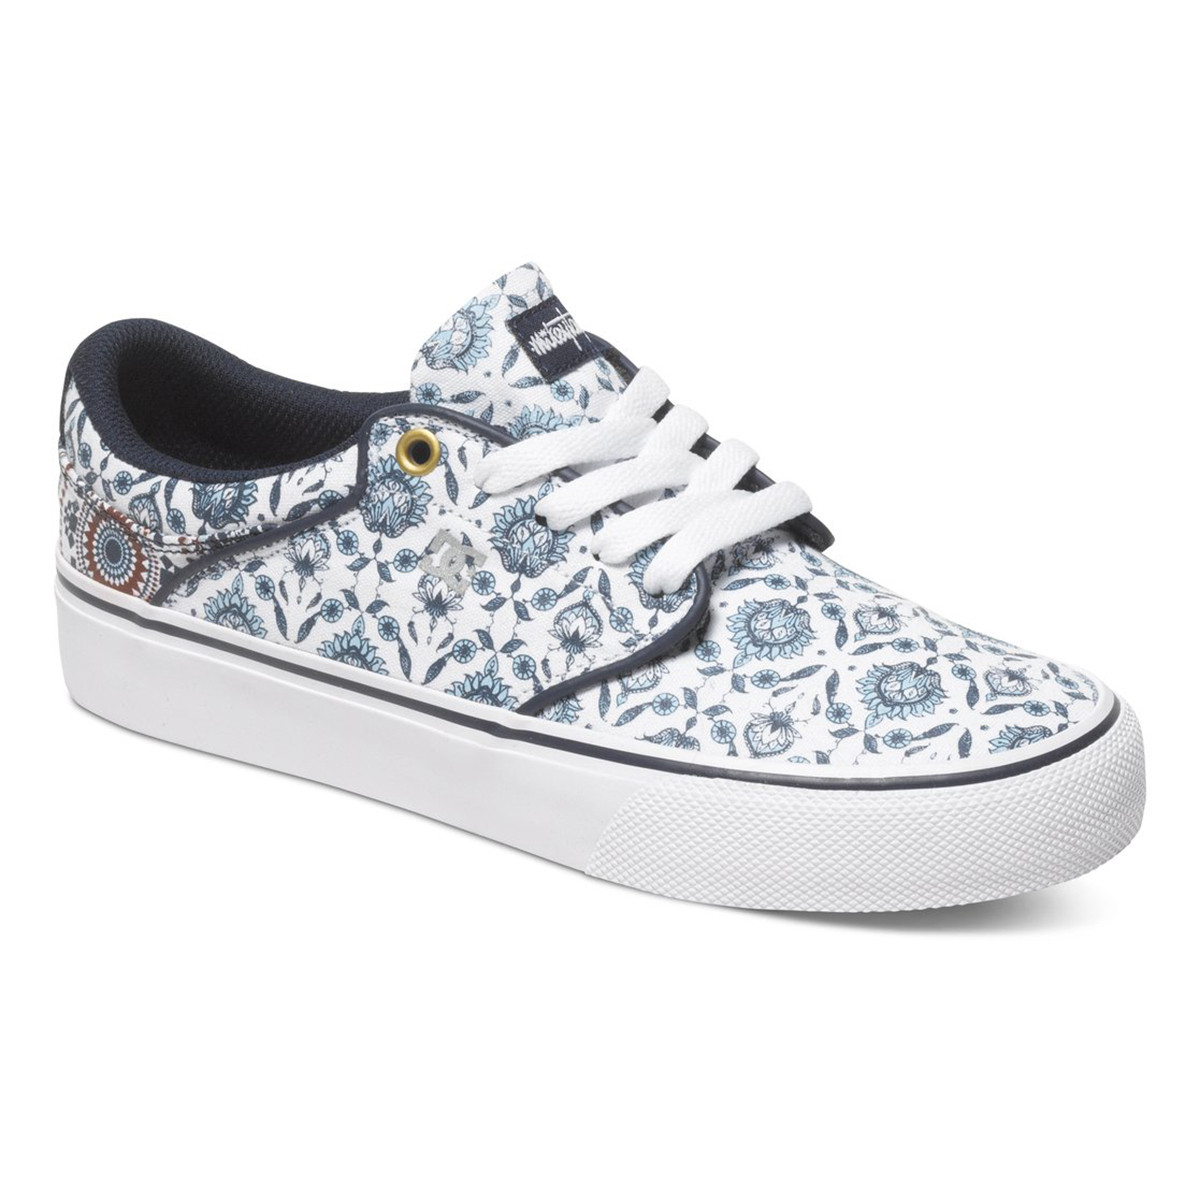 DC Shoes Mickey Taylor Vulc Chaussure Femme  - Chaussures Chaussures de Skate Femme